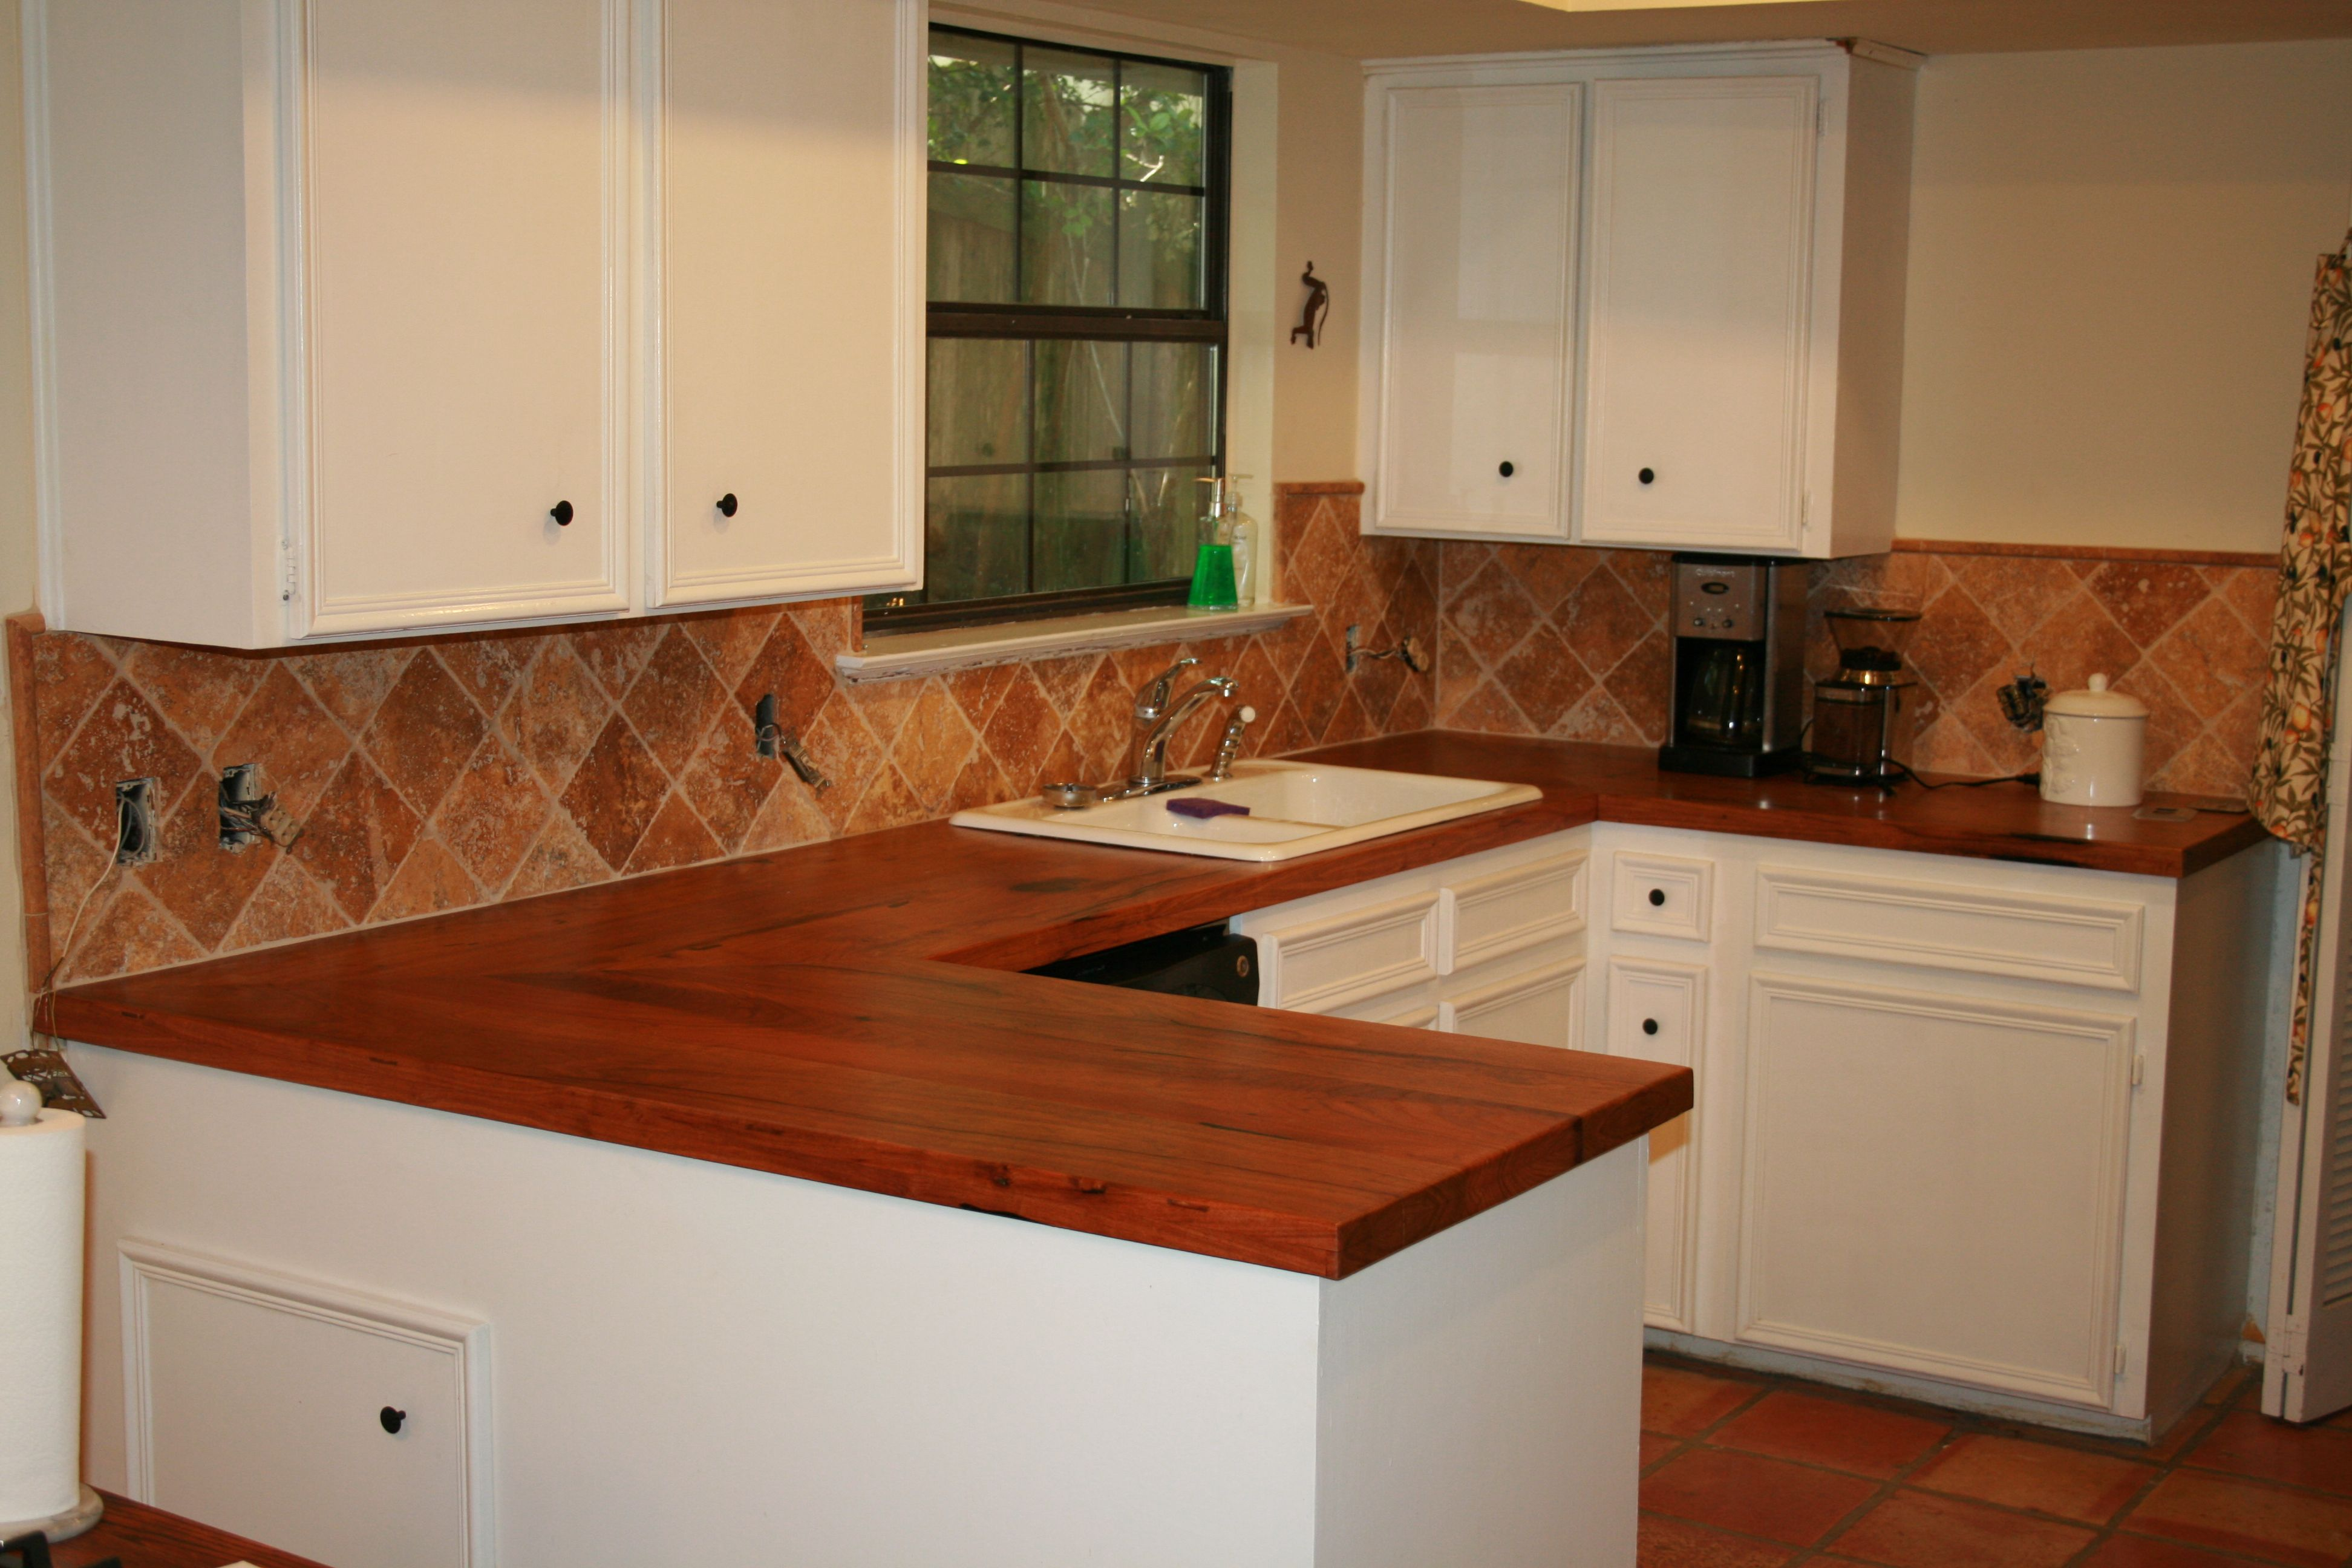 Maple countertop Maple edge grain kitchen counter top Maple Counter Tops